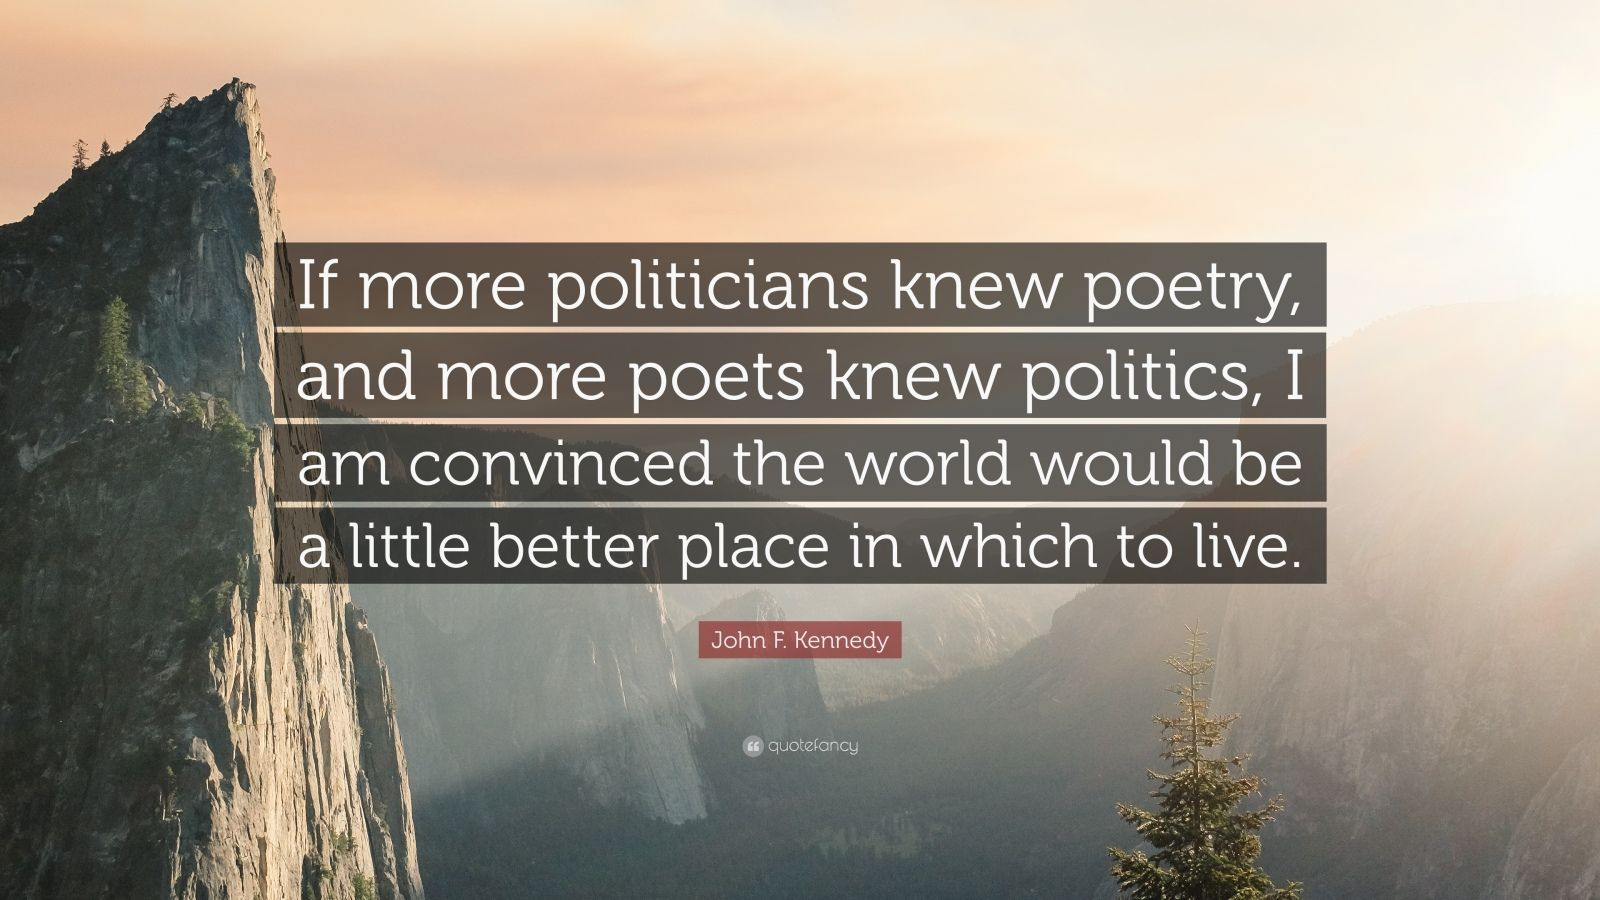 """John F. Kennedy Quote: """"If more politicians knew poetry, and more poets knew politics, I am convinced the world would be a little better place in which to live."""""""